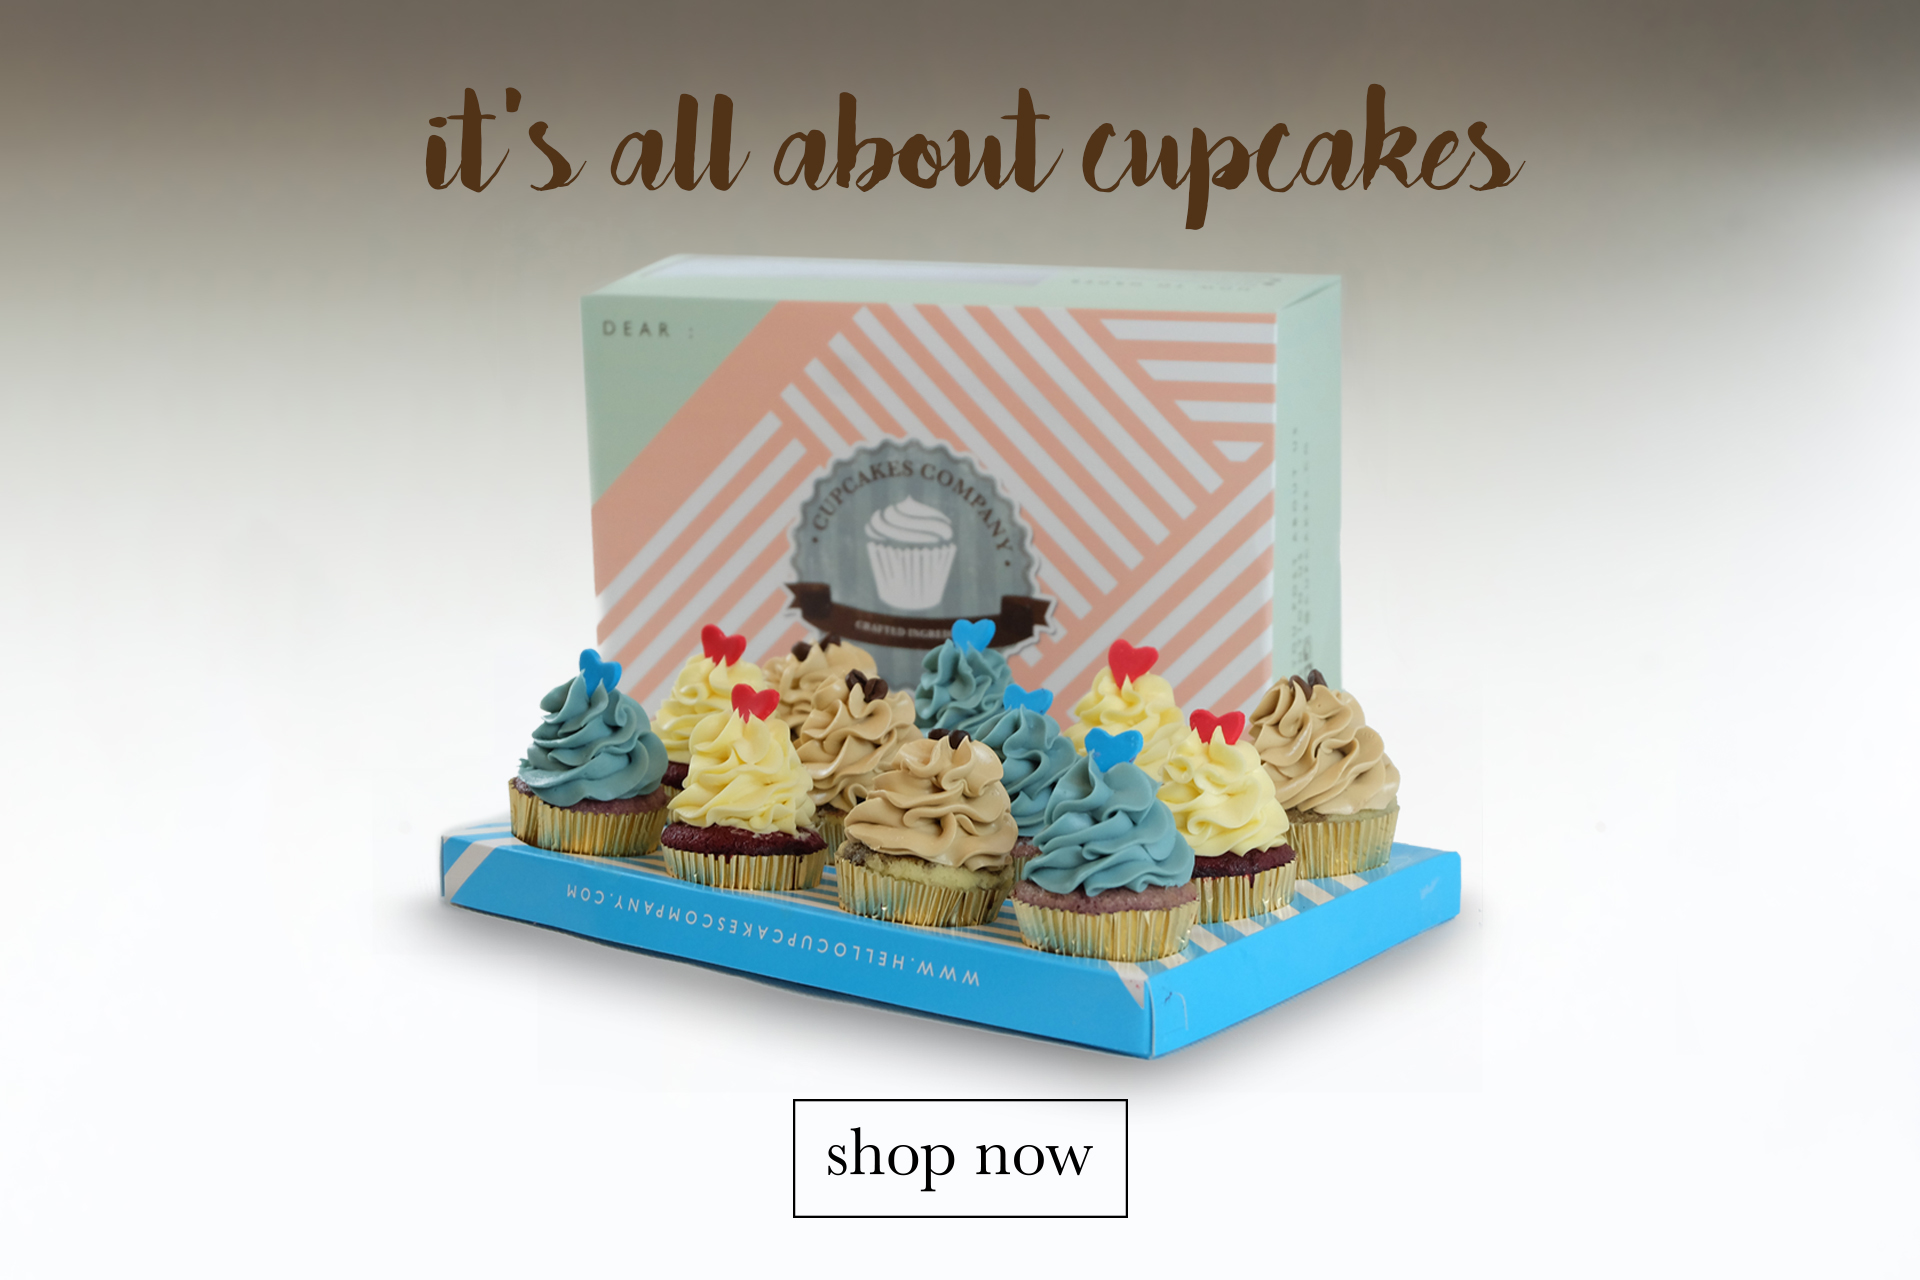 CUPCAKES MONTH